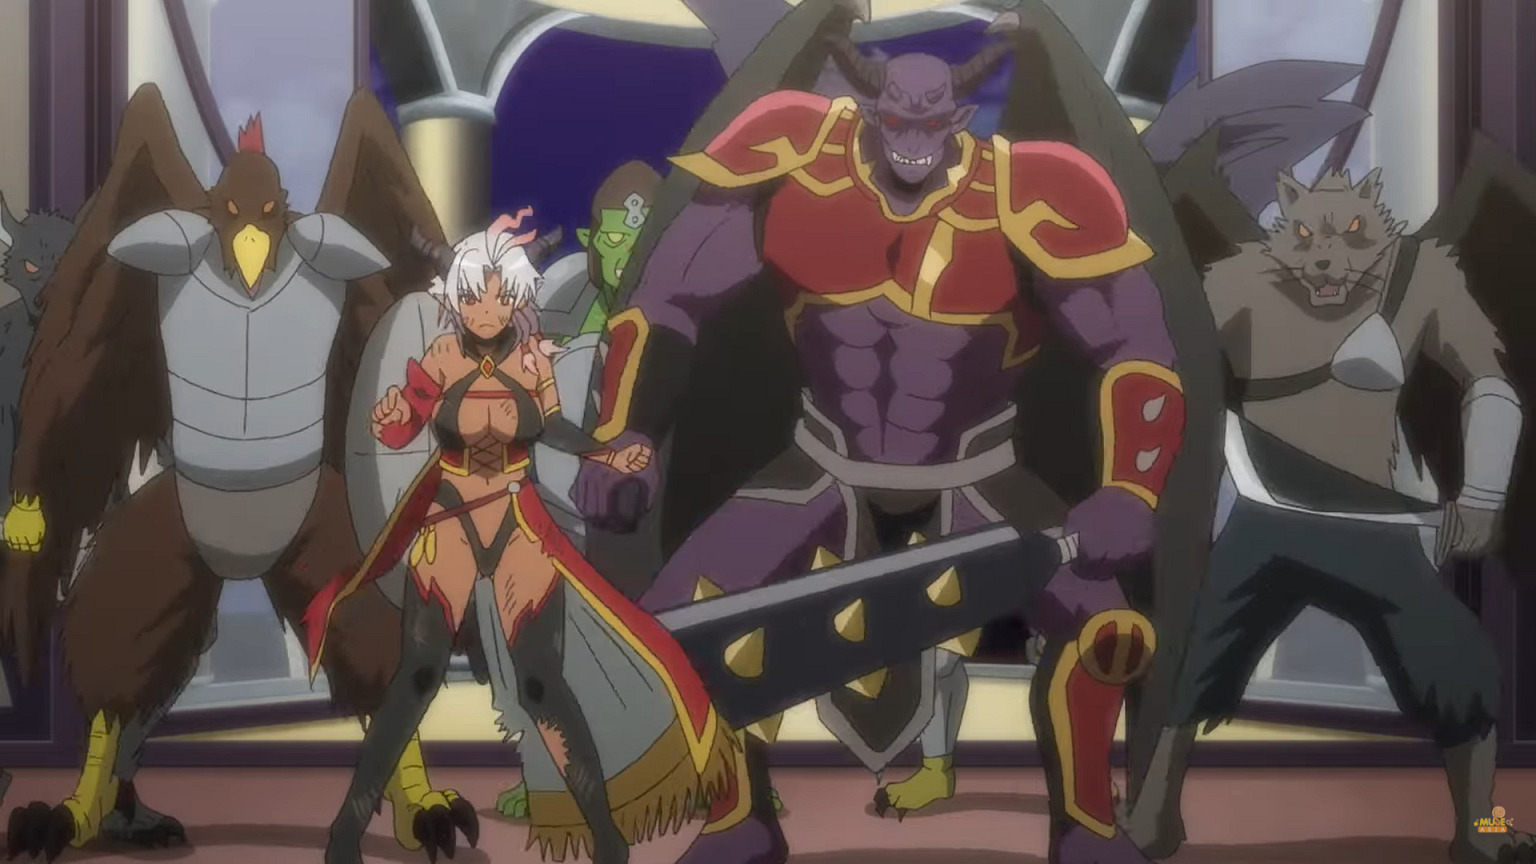 Arrival-of-the-demon-lord's-army-in-the-castle